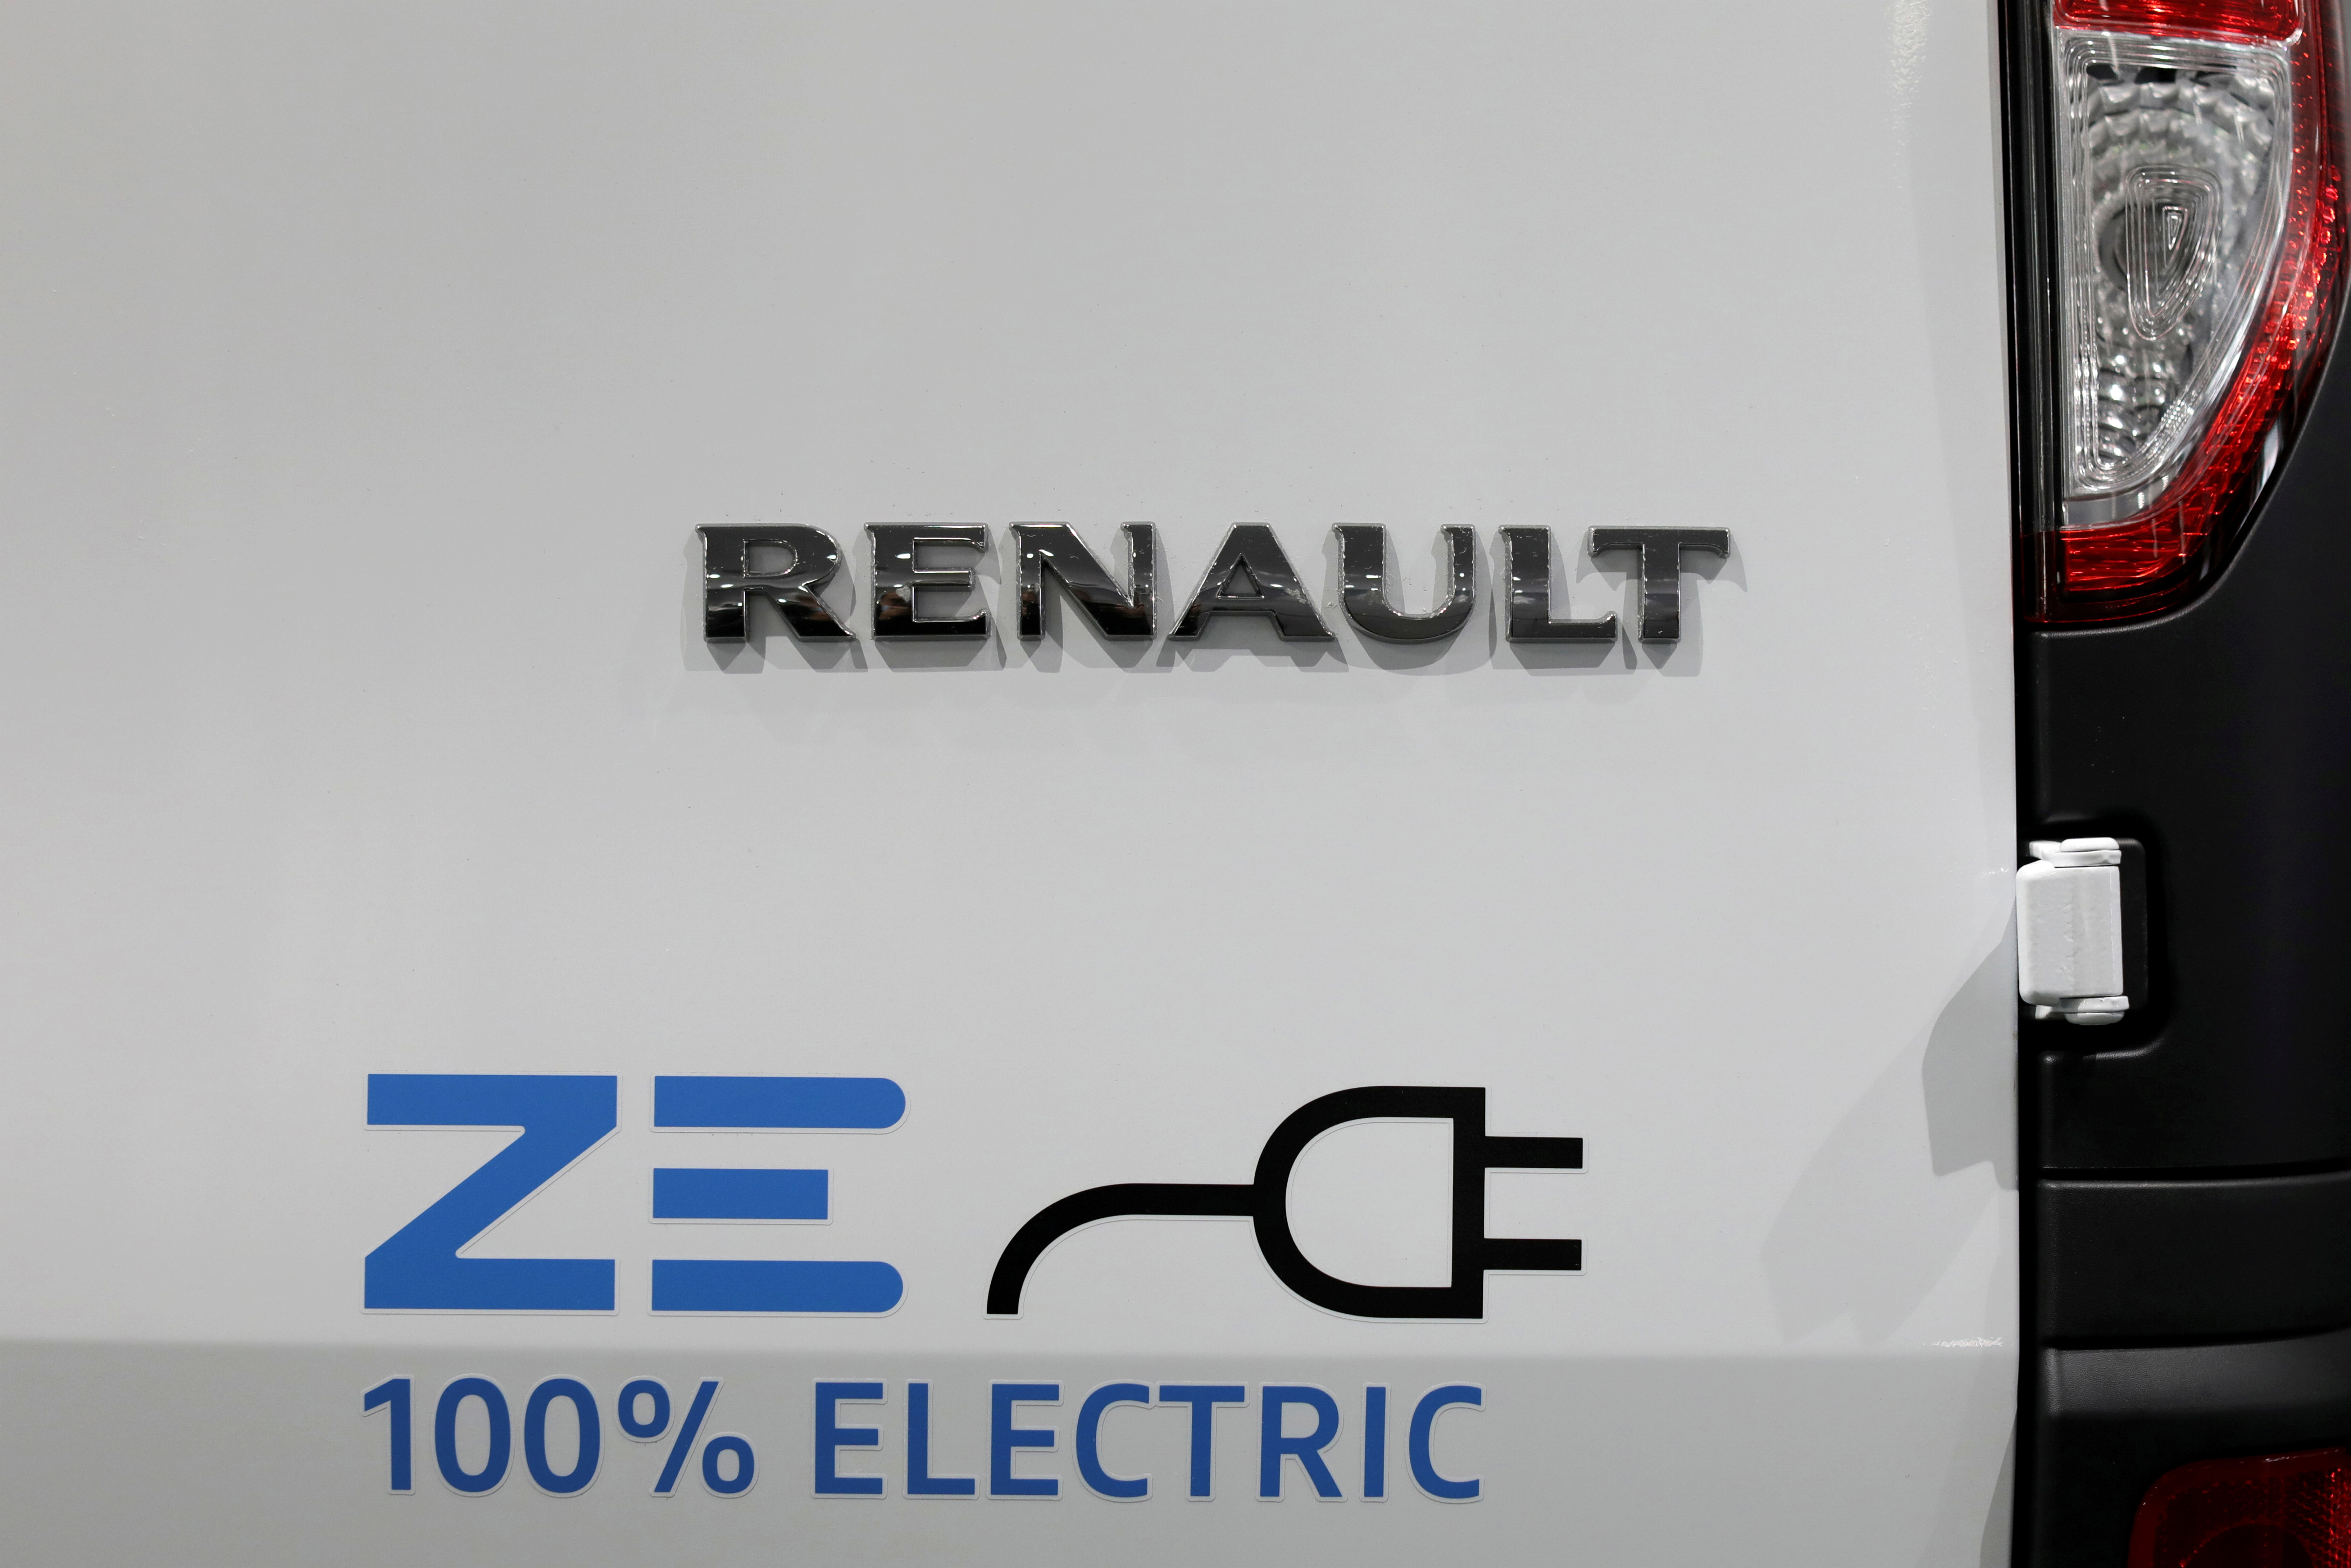 A 100% Electric logo is seen on a Renault Kangoo ZE electric utility vehicle at a Renault automobile dealership in Cagnes-Sur-Mer, France, October 22, 2020. REUTERS/Eric Gaillard/File Photo